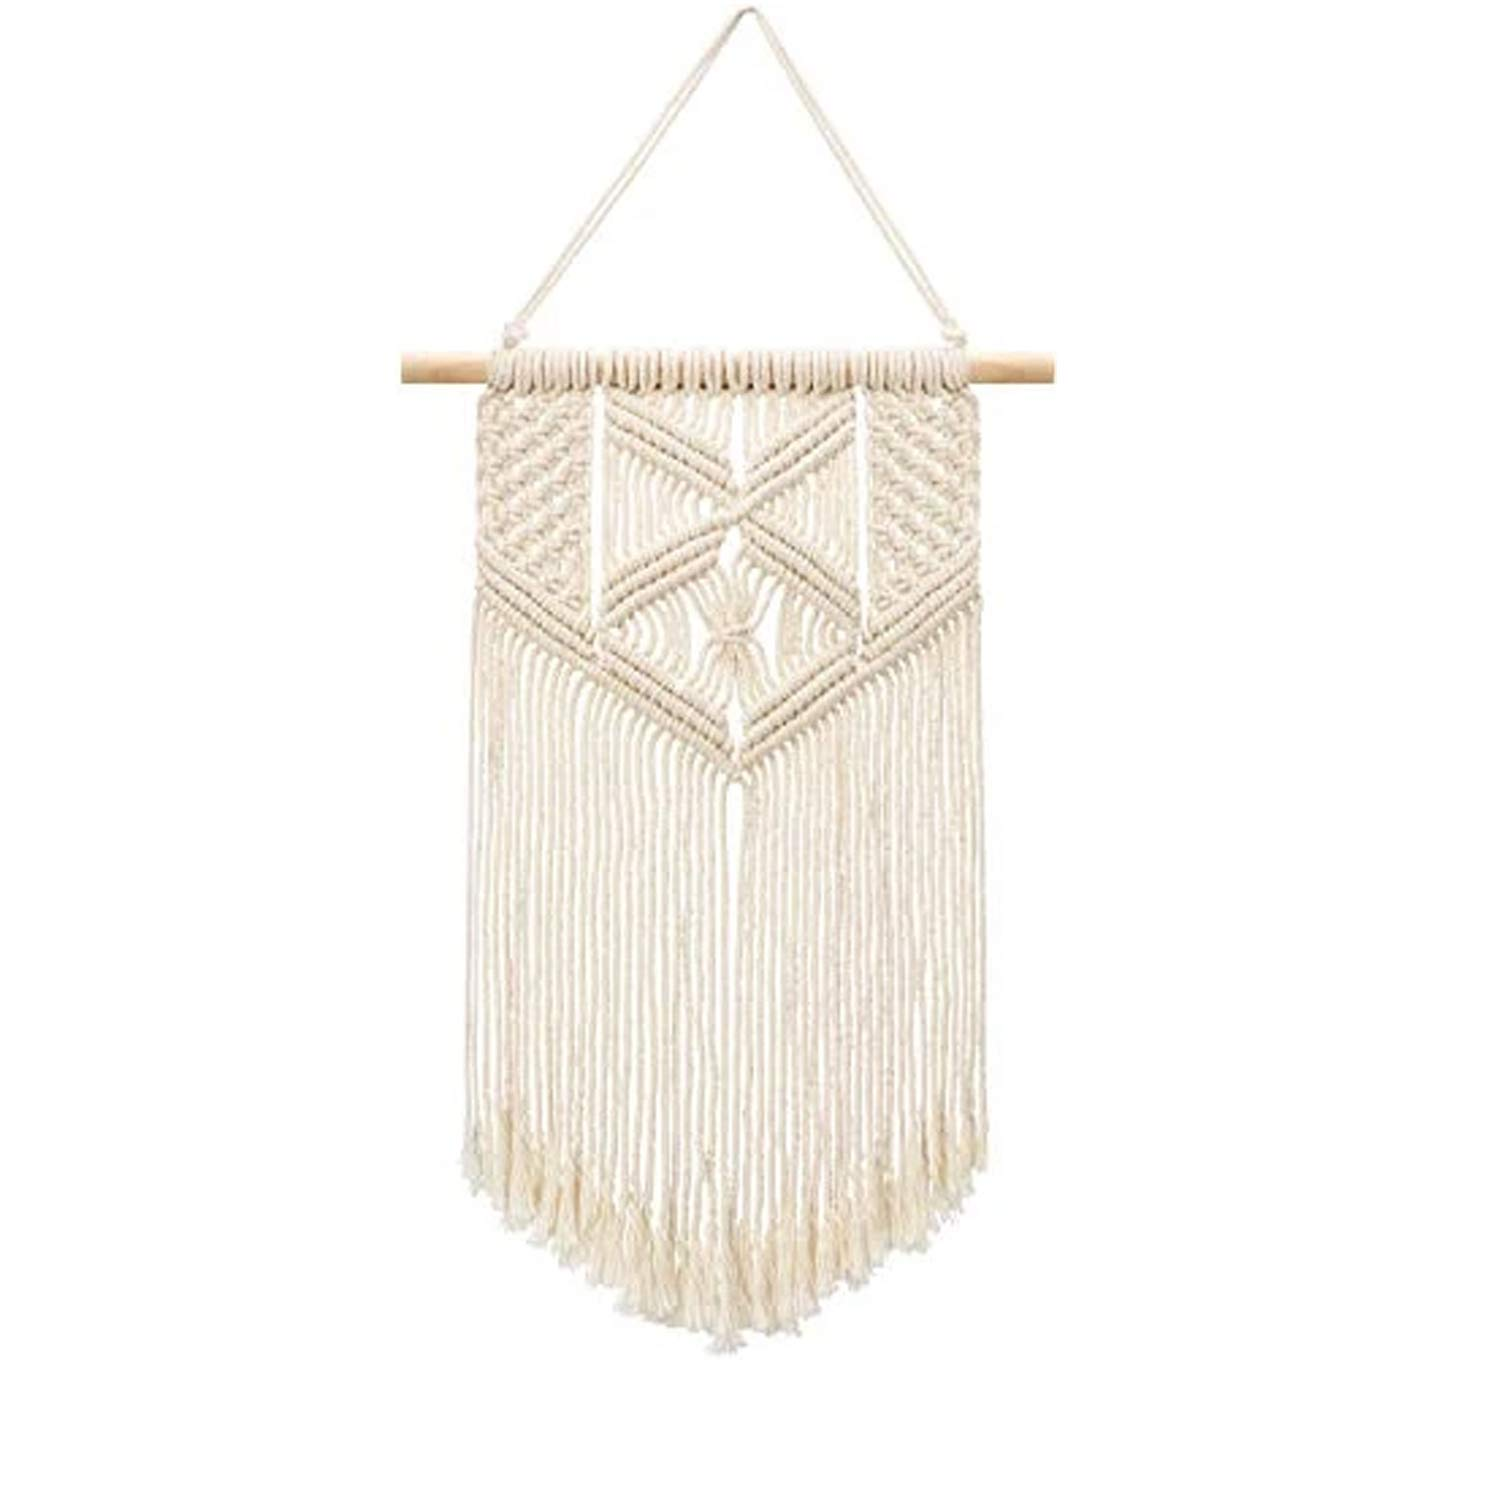 """Samhita Macrame wall hanging, Macrame Tapestry, Indoor Hanging, Wall Decor, Wall Pediment, Decorations for Home, Kitchen, Bedroom or Apartment (18"""" X 12"""" inches)"""